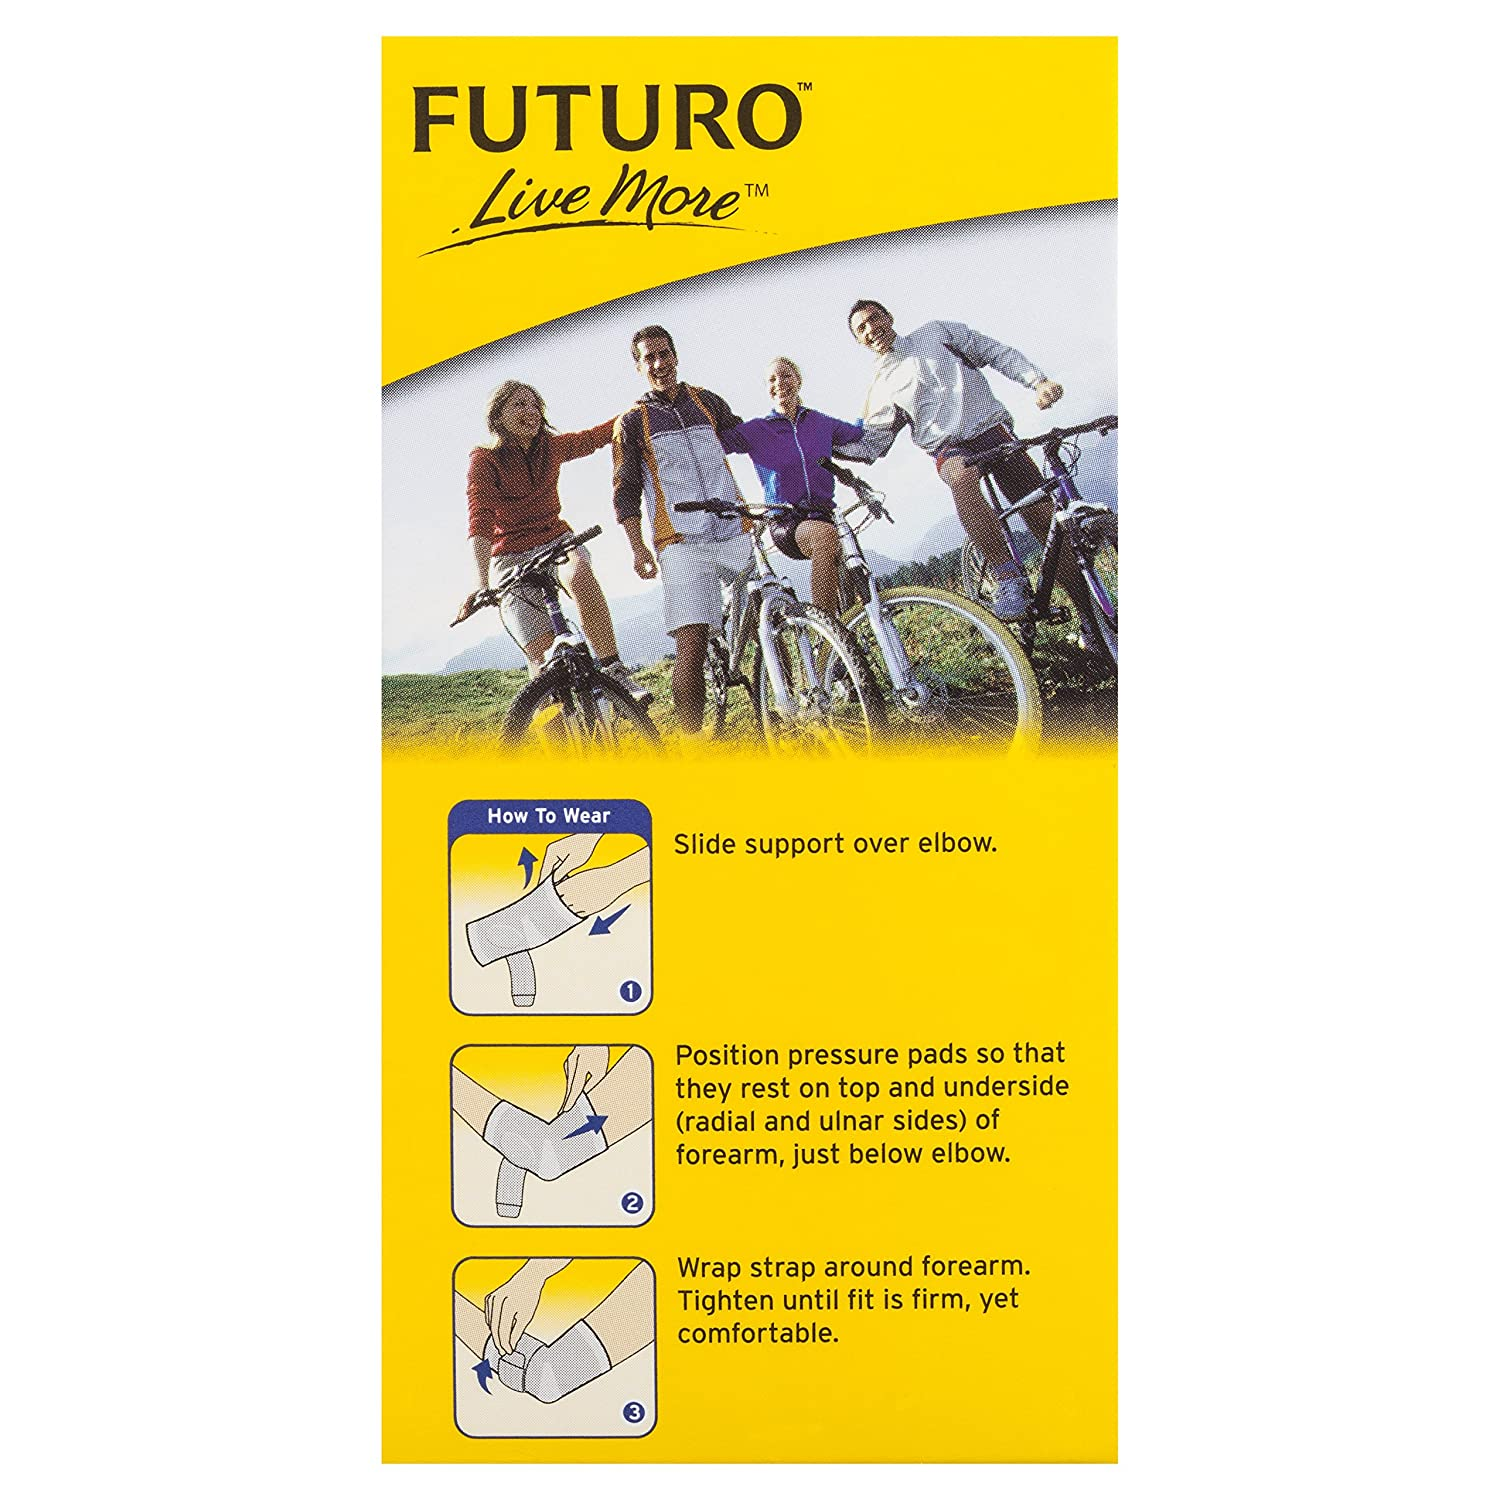 Buy Elbow futuro support how to wear pictures trends